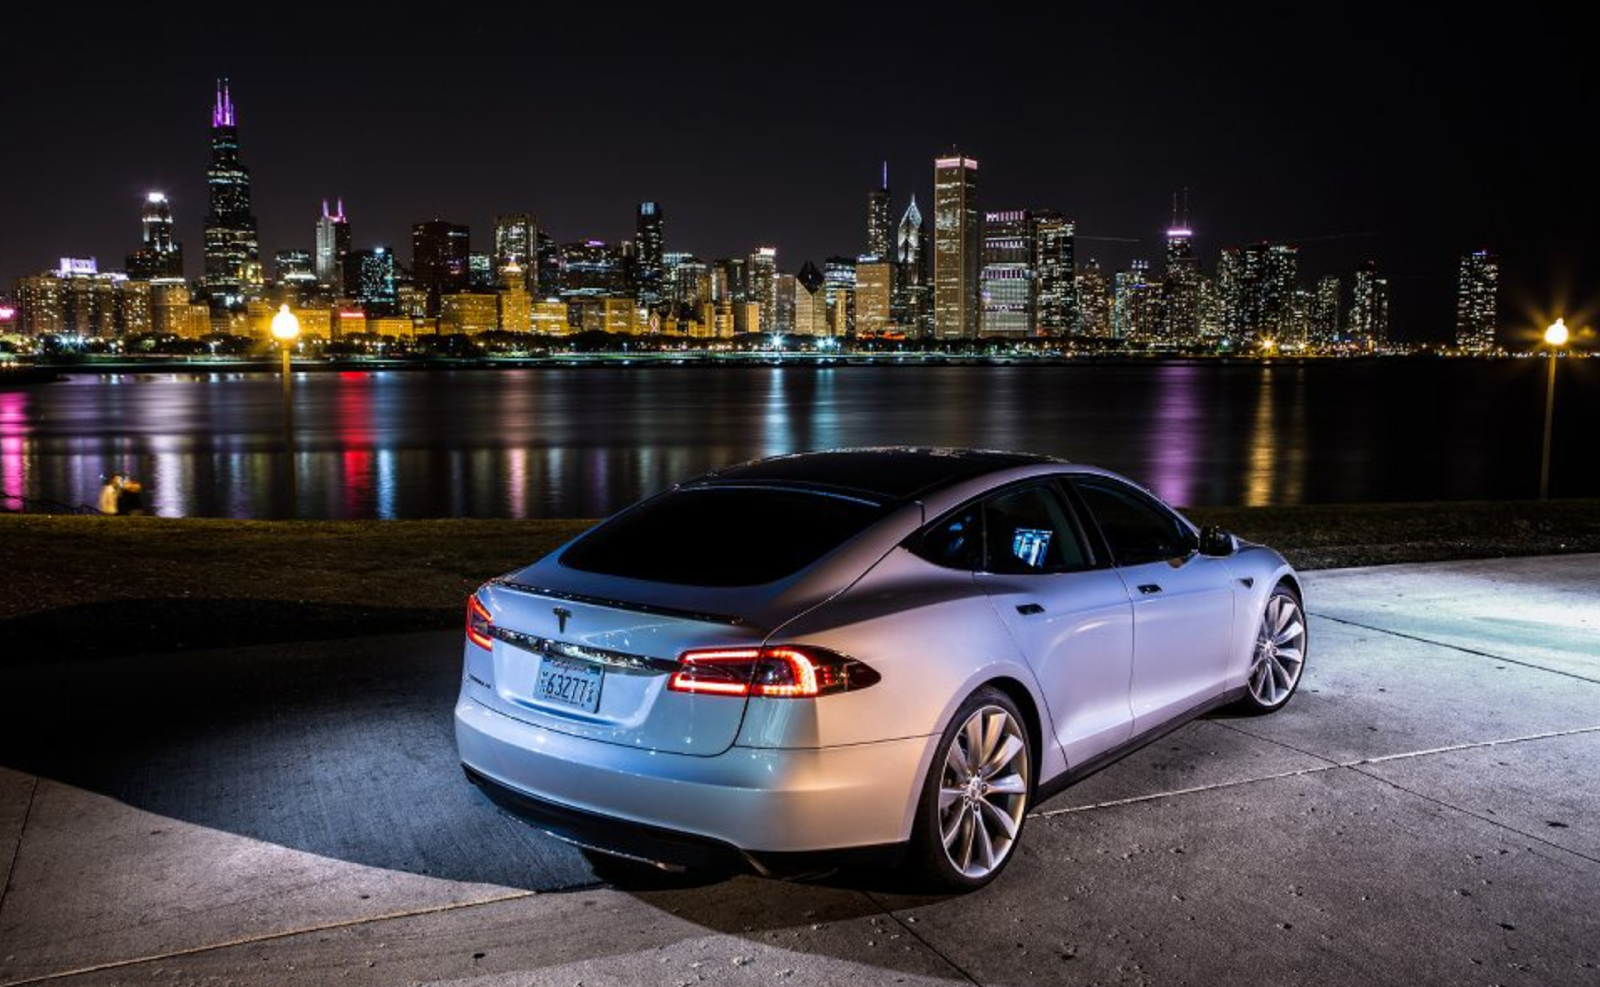 Tesla 2014 HD Wallpapers android Wallpaper Cars 74461 high quality 1600x987